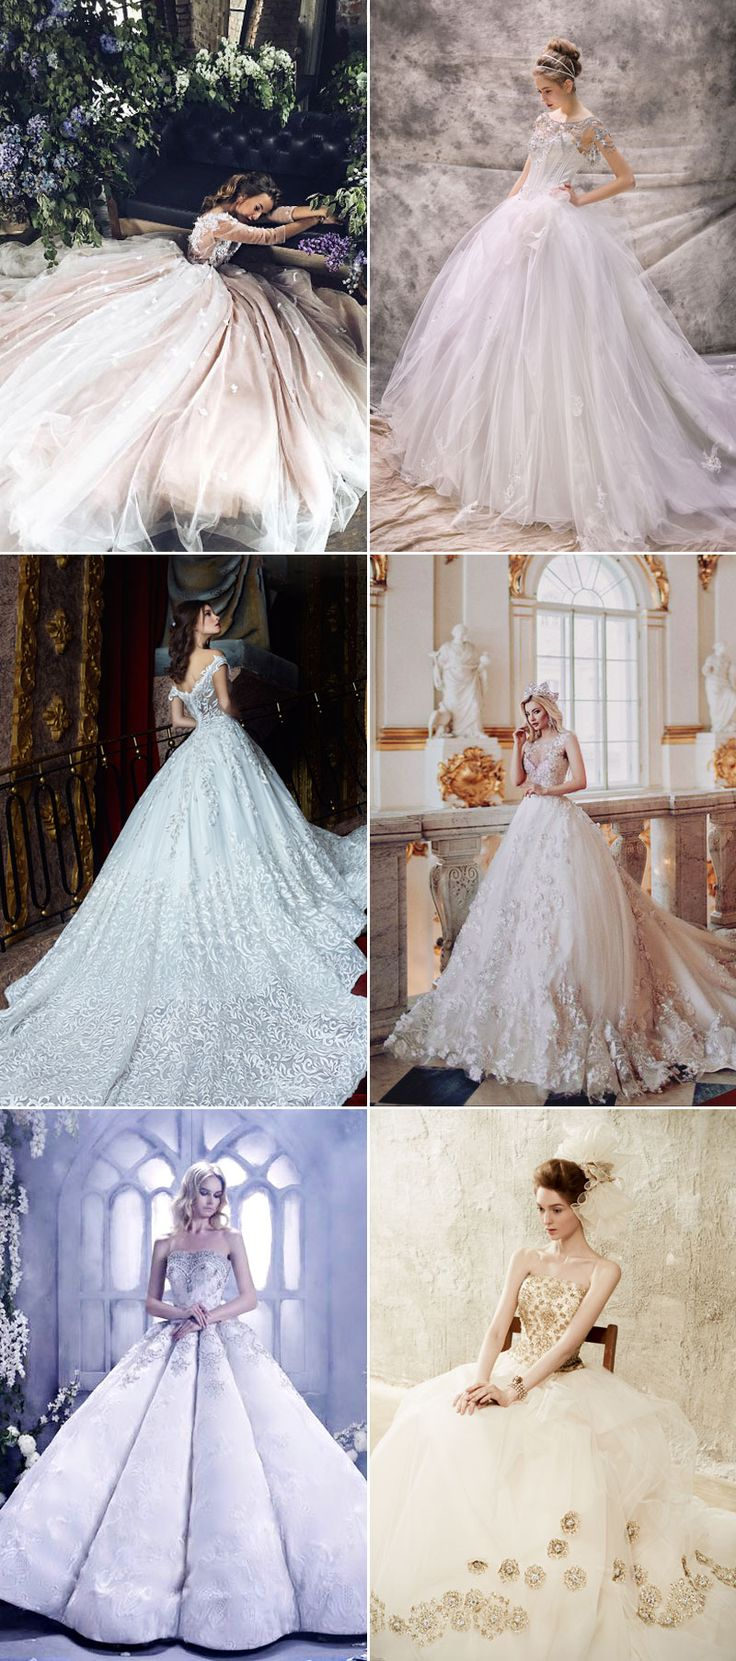 Princess Gowns. Best Images About Wedding Dresses On Pinterest ...